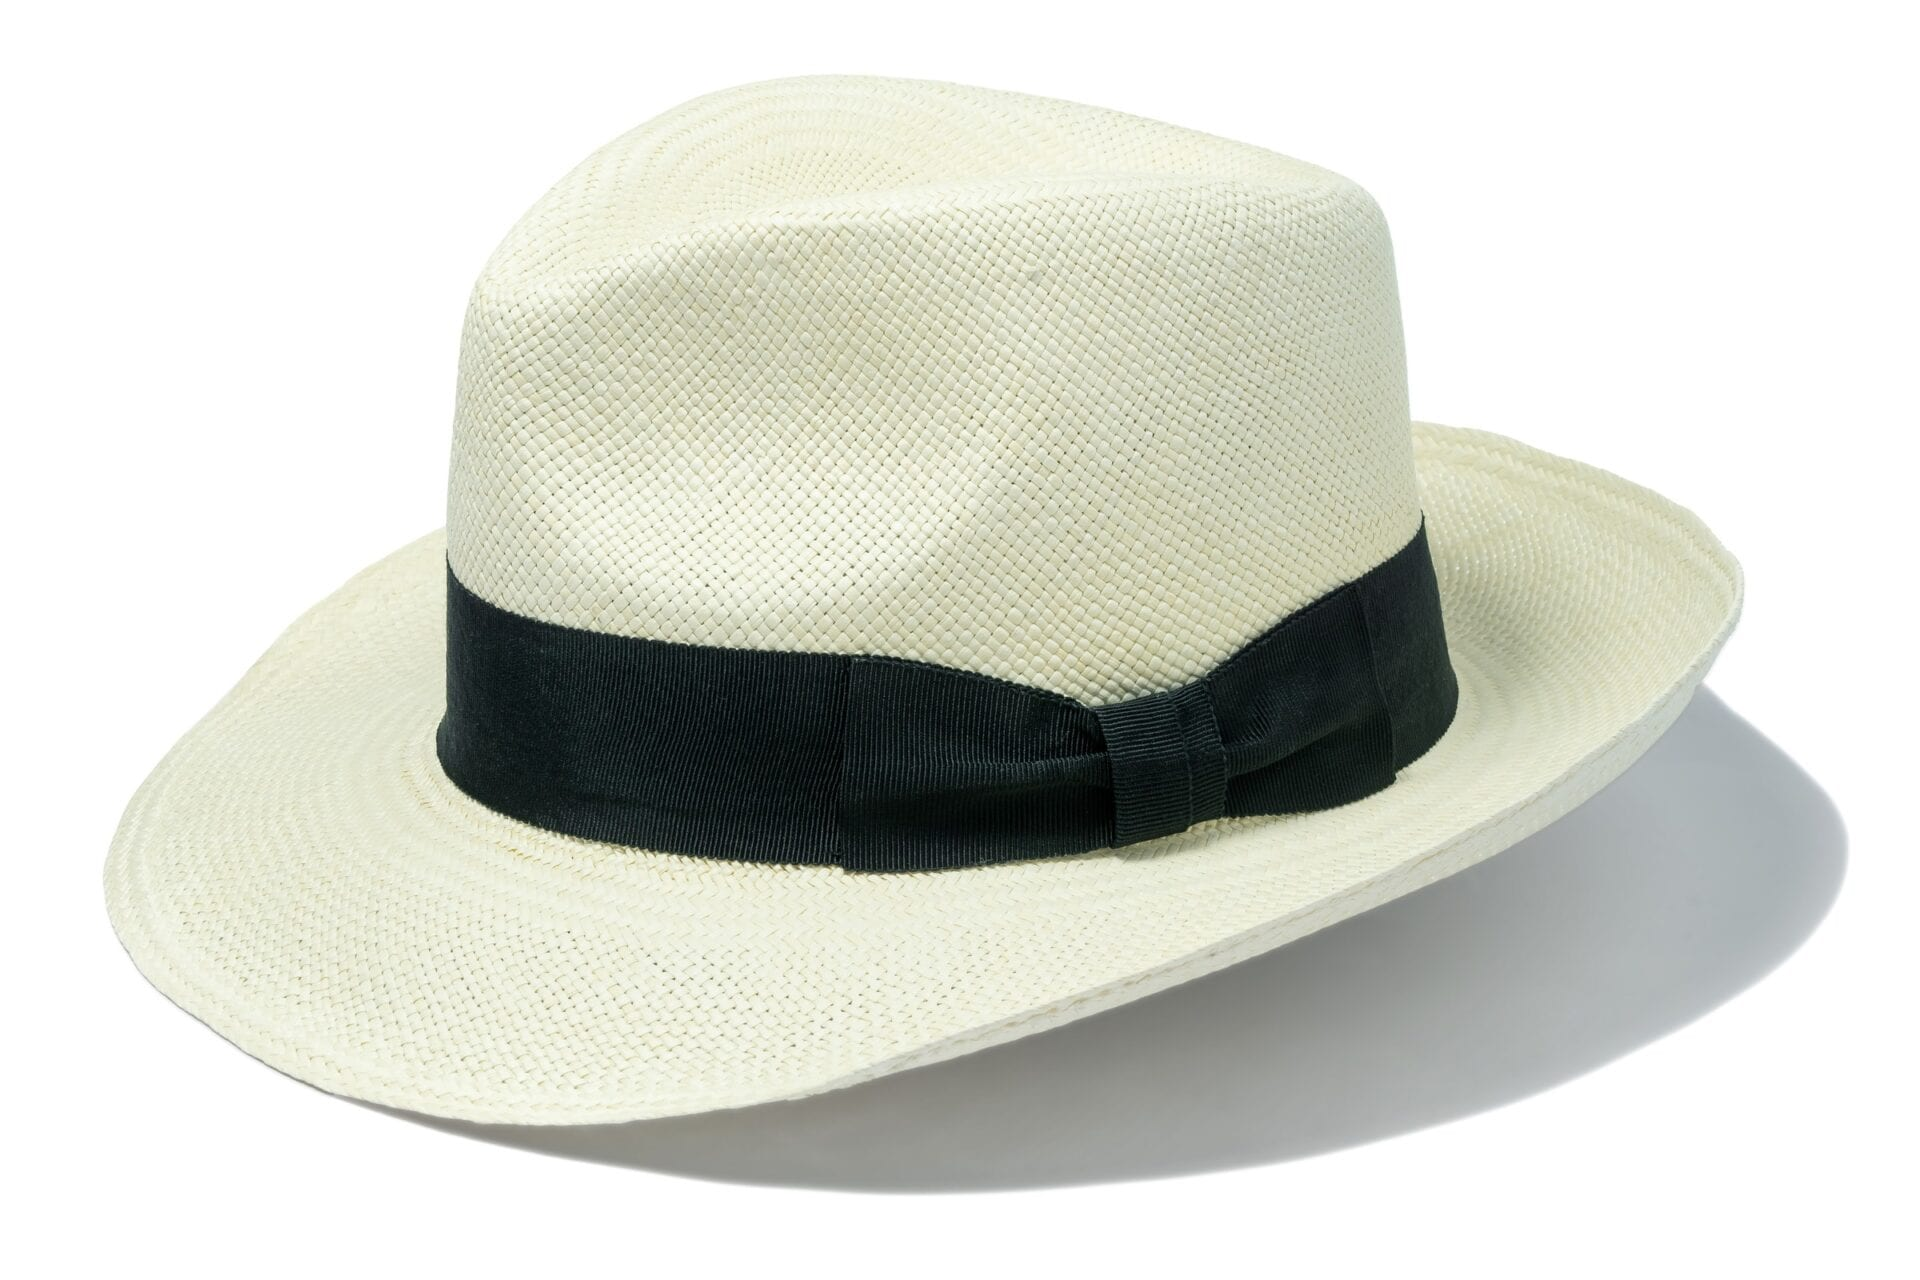 Men's_fedora_style_panama_hat_with_ribbon